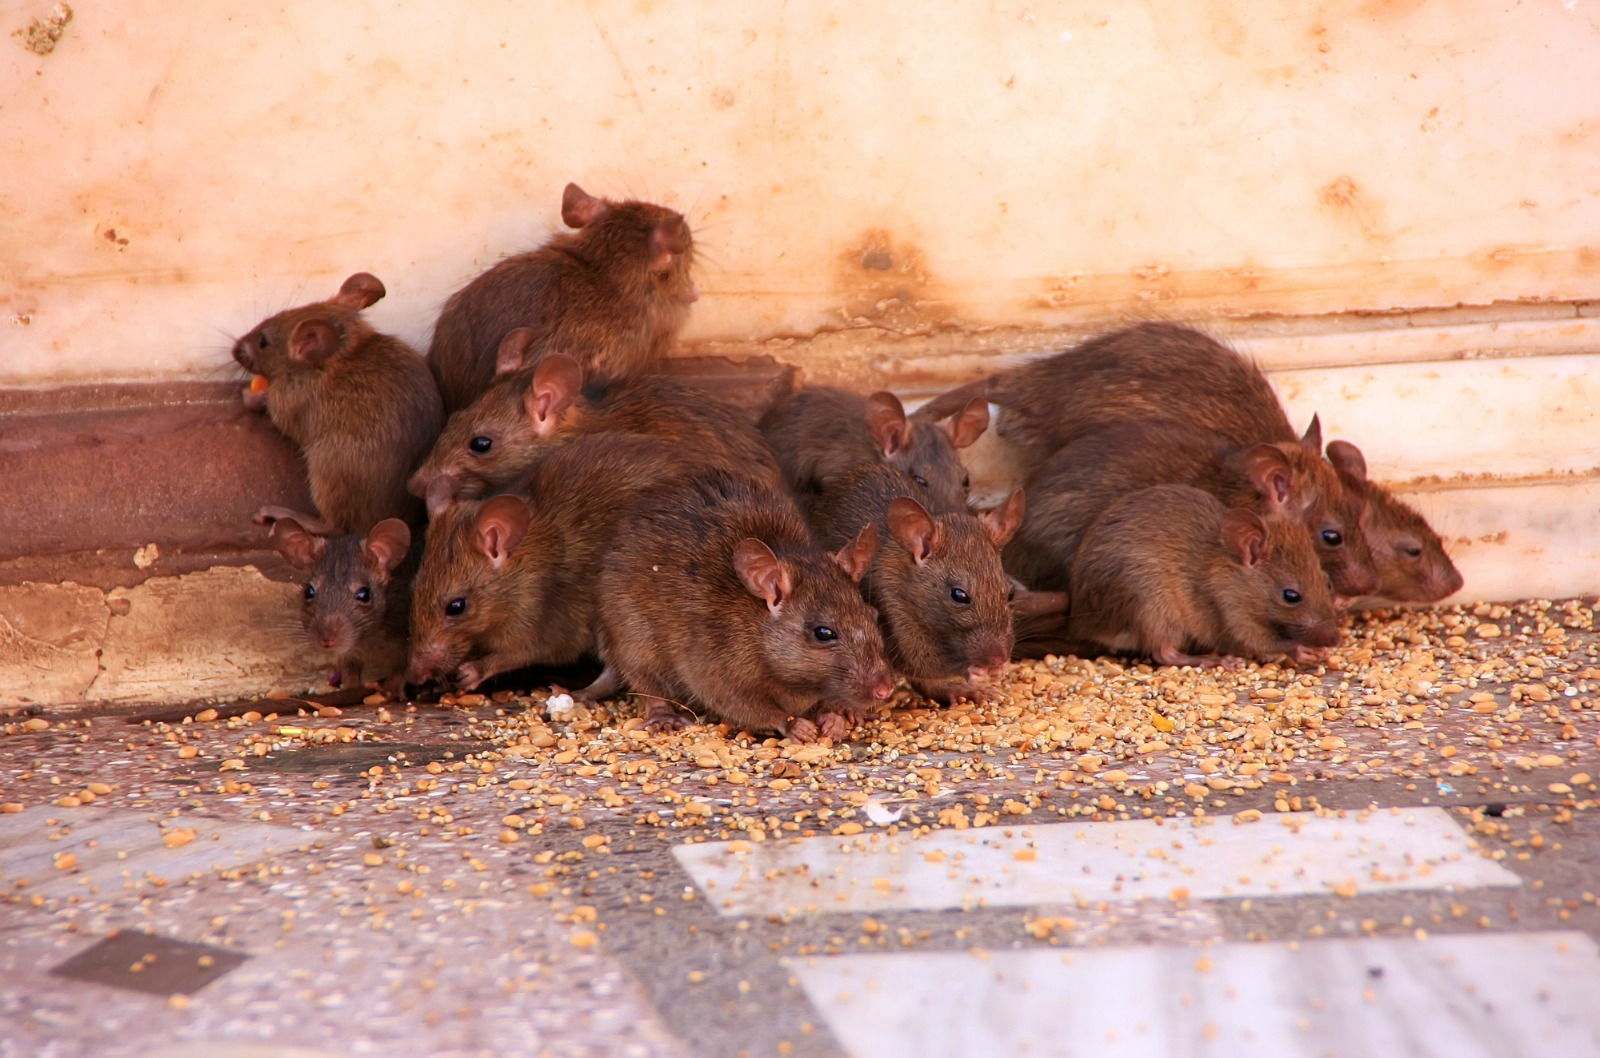 Reducing Rat Populations Through Non-lethal Pest Control